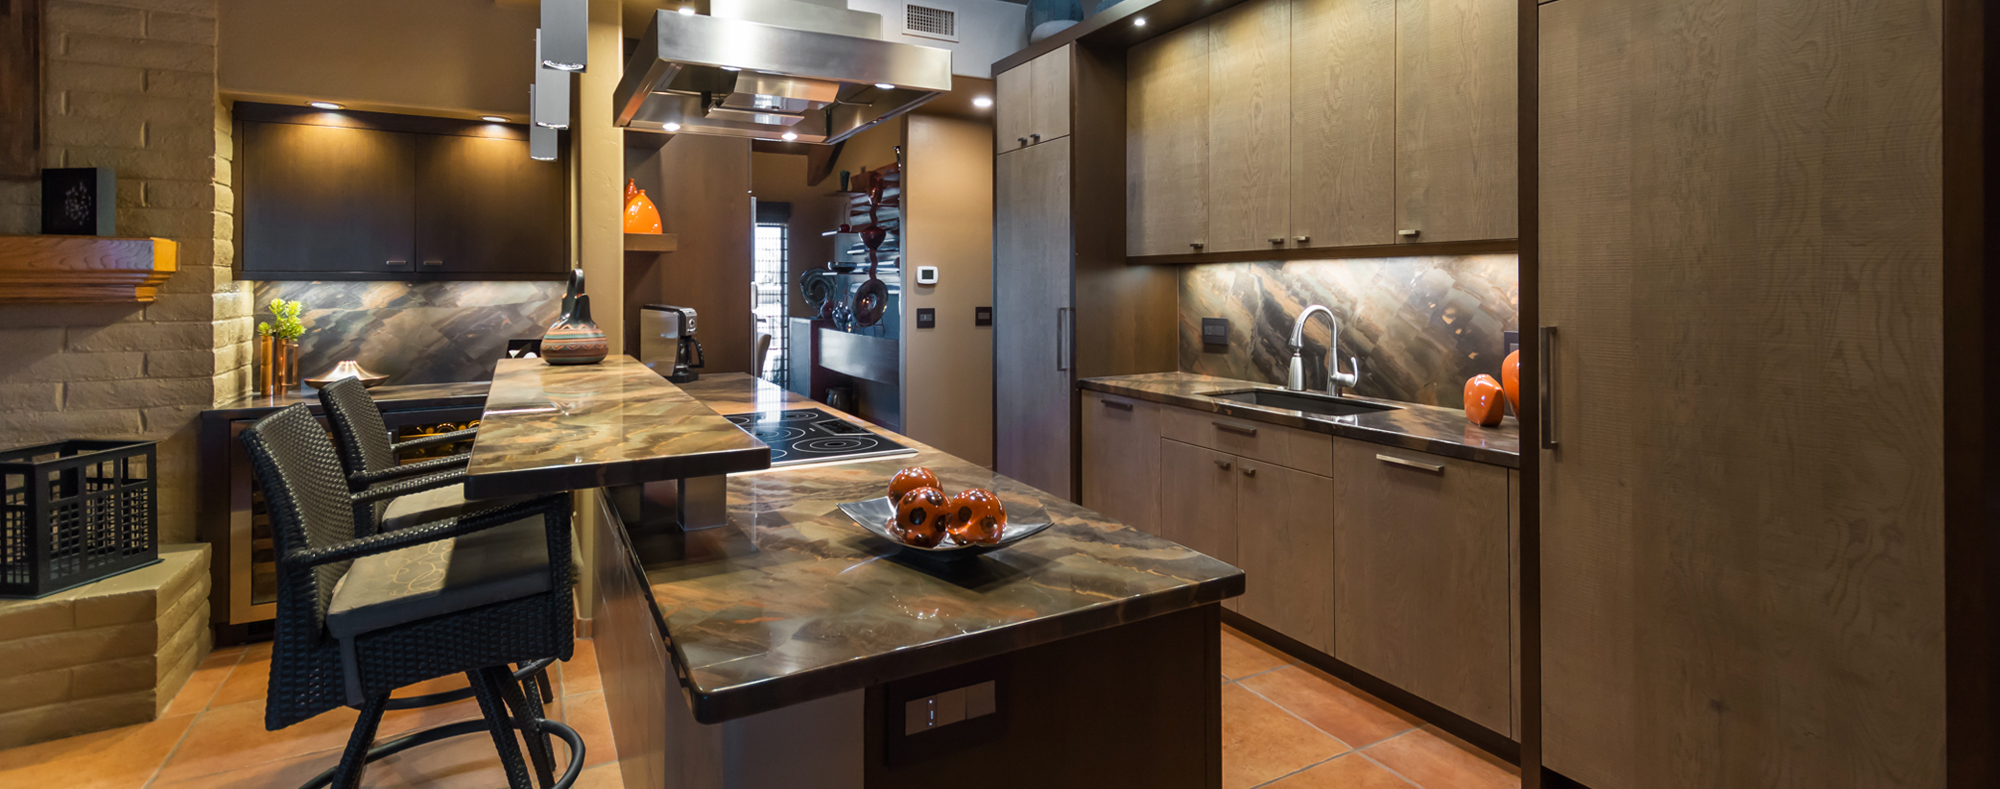 Genial Canyon Cabinetry U0026 Design Is One Of Tucsonu0027s Most Respected Kitchen And  Bath Remodelers. We Offer Many Fine Lines Of Cabinetry.